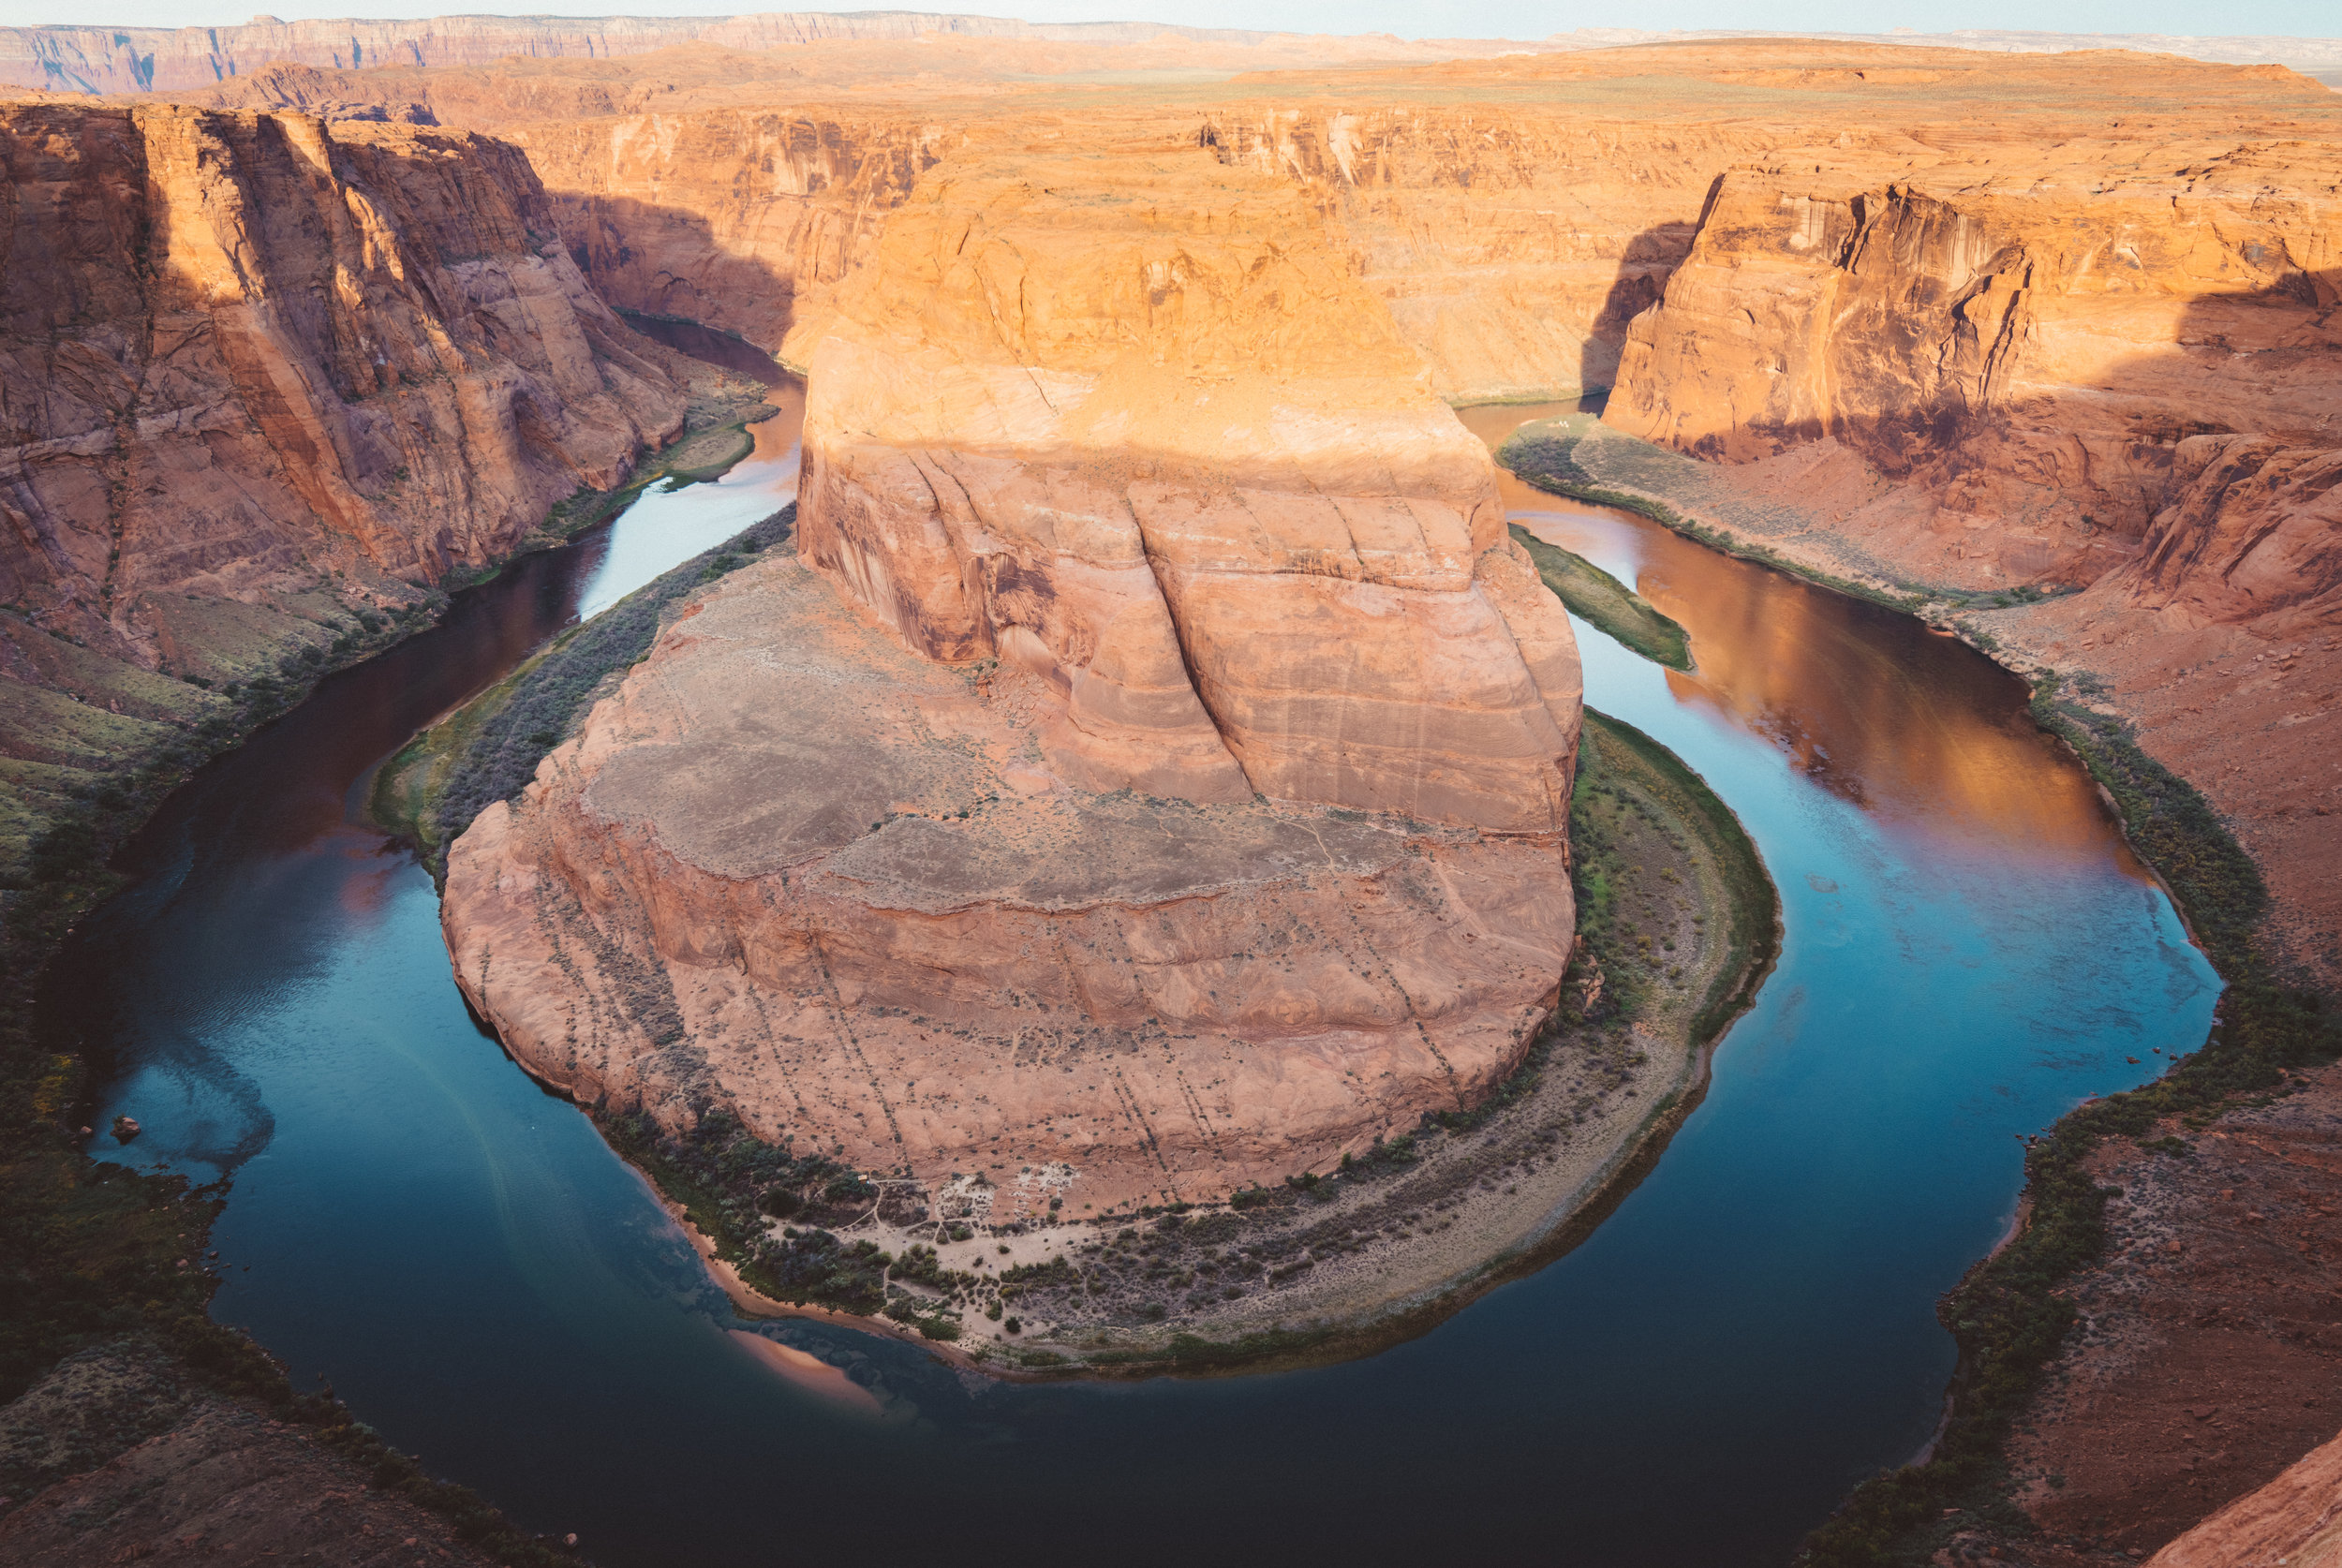 Horseshoe Bend. I had not the lens nor the proper lighting to capture this unique place.